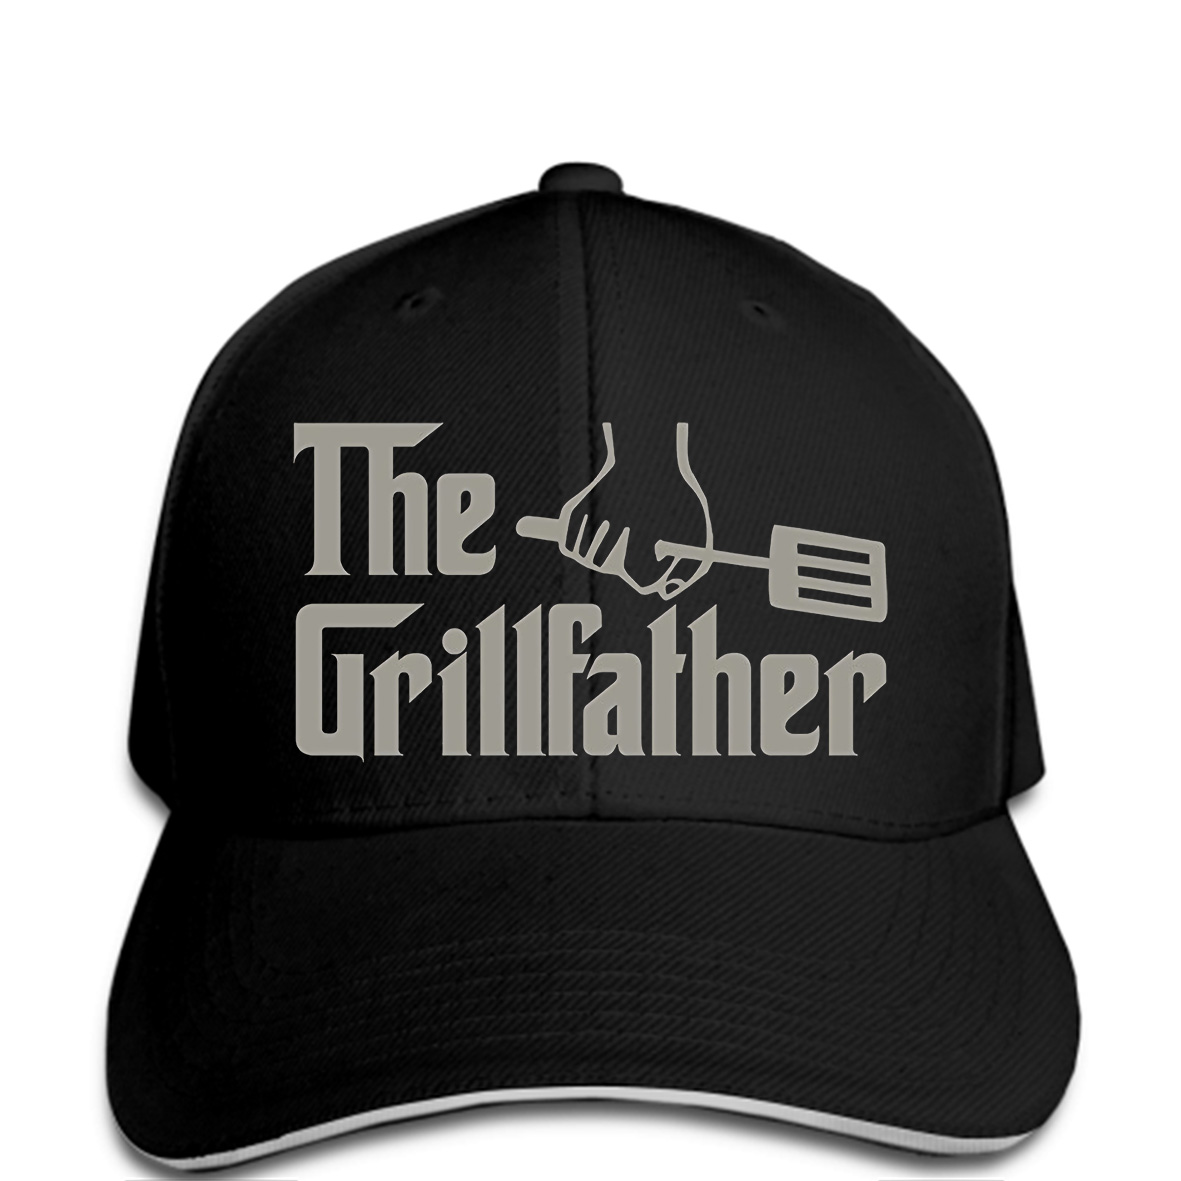 Baseball cap Men's Fashion The Grillfather Grey Funny BBQ Grill Chef snapback Hat